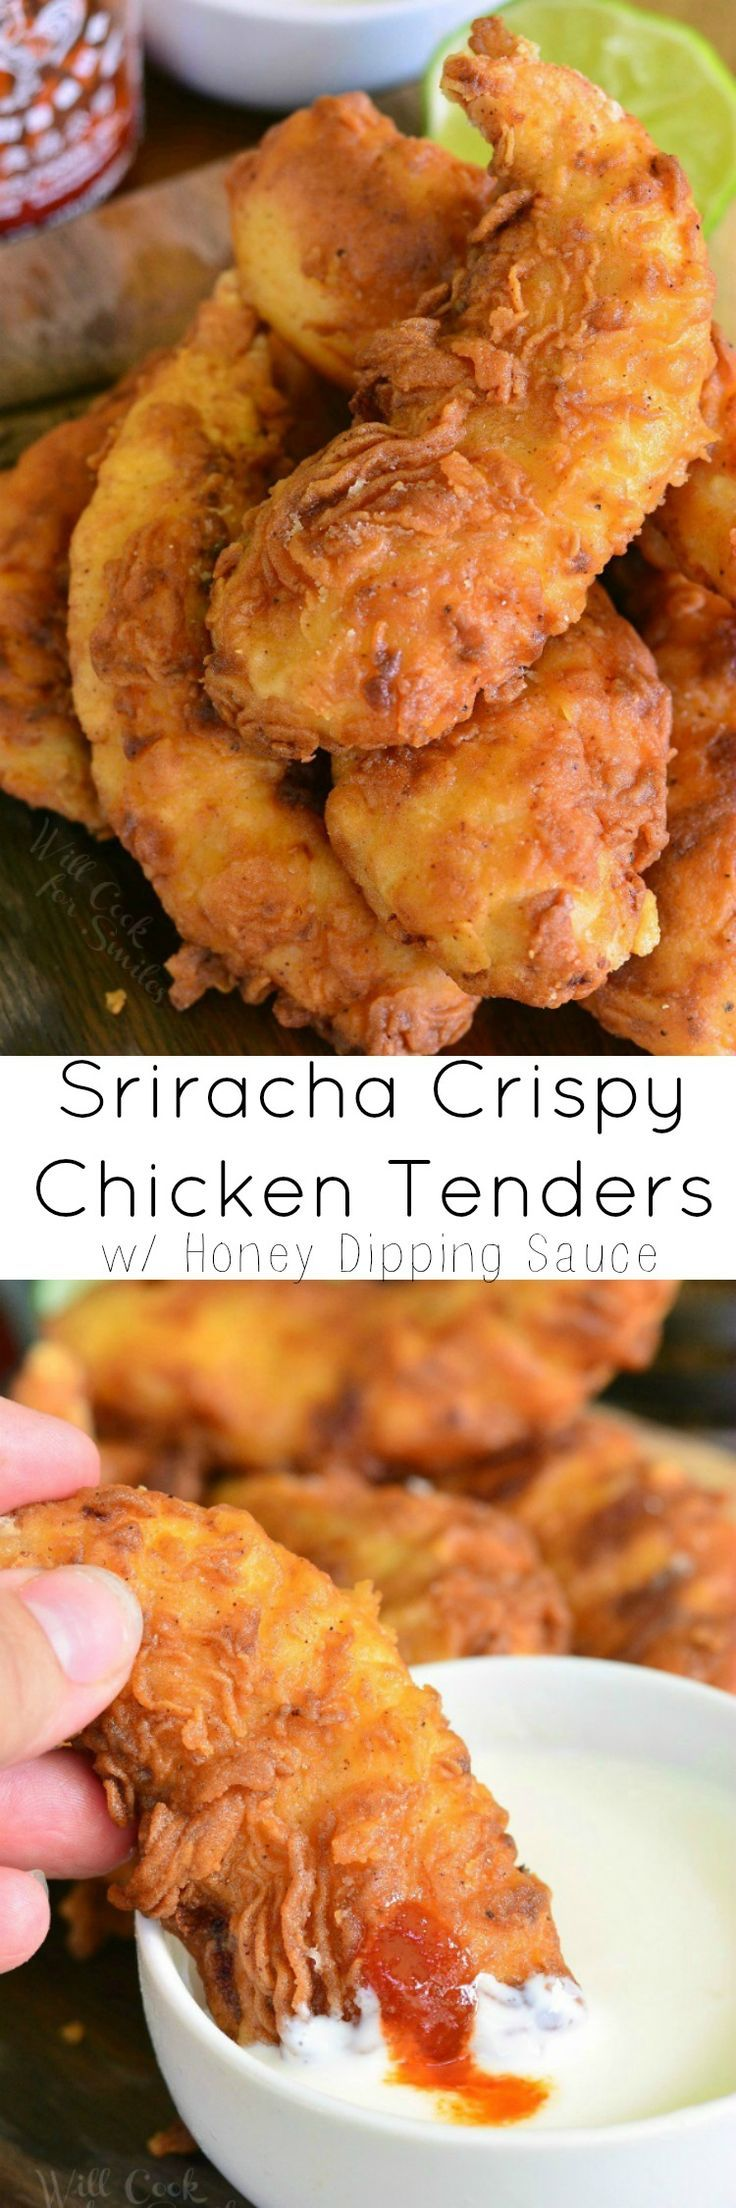 Sriracha Crispy Chicken Tenders with Honey Dipping Sauce. Crispy chicken tenders are made with sriracha sauce right in the batter and served with a cool, sweet honey sour cream sauce.